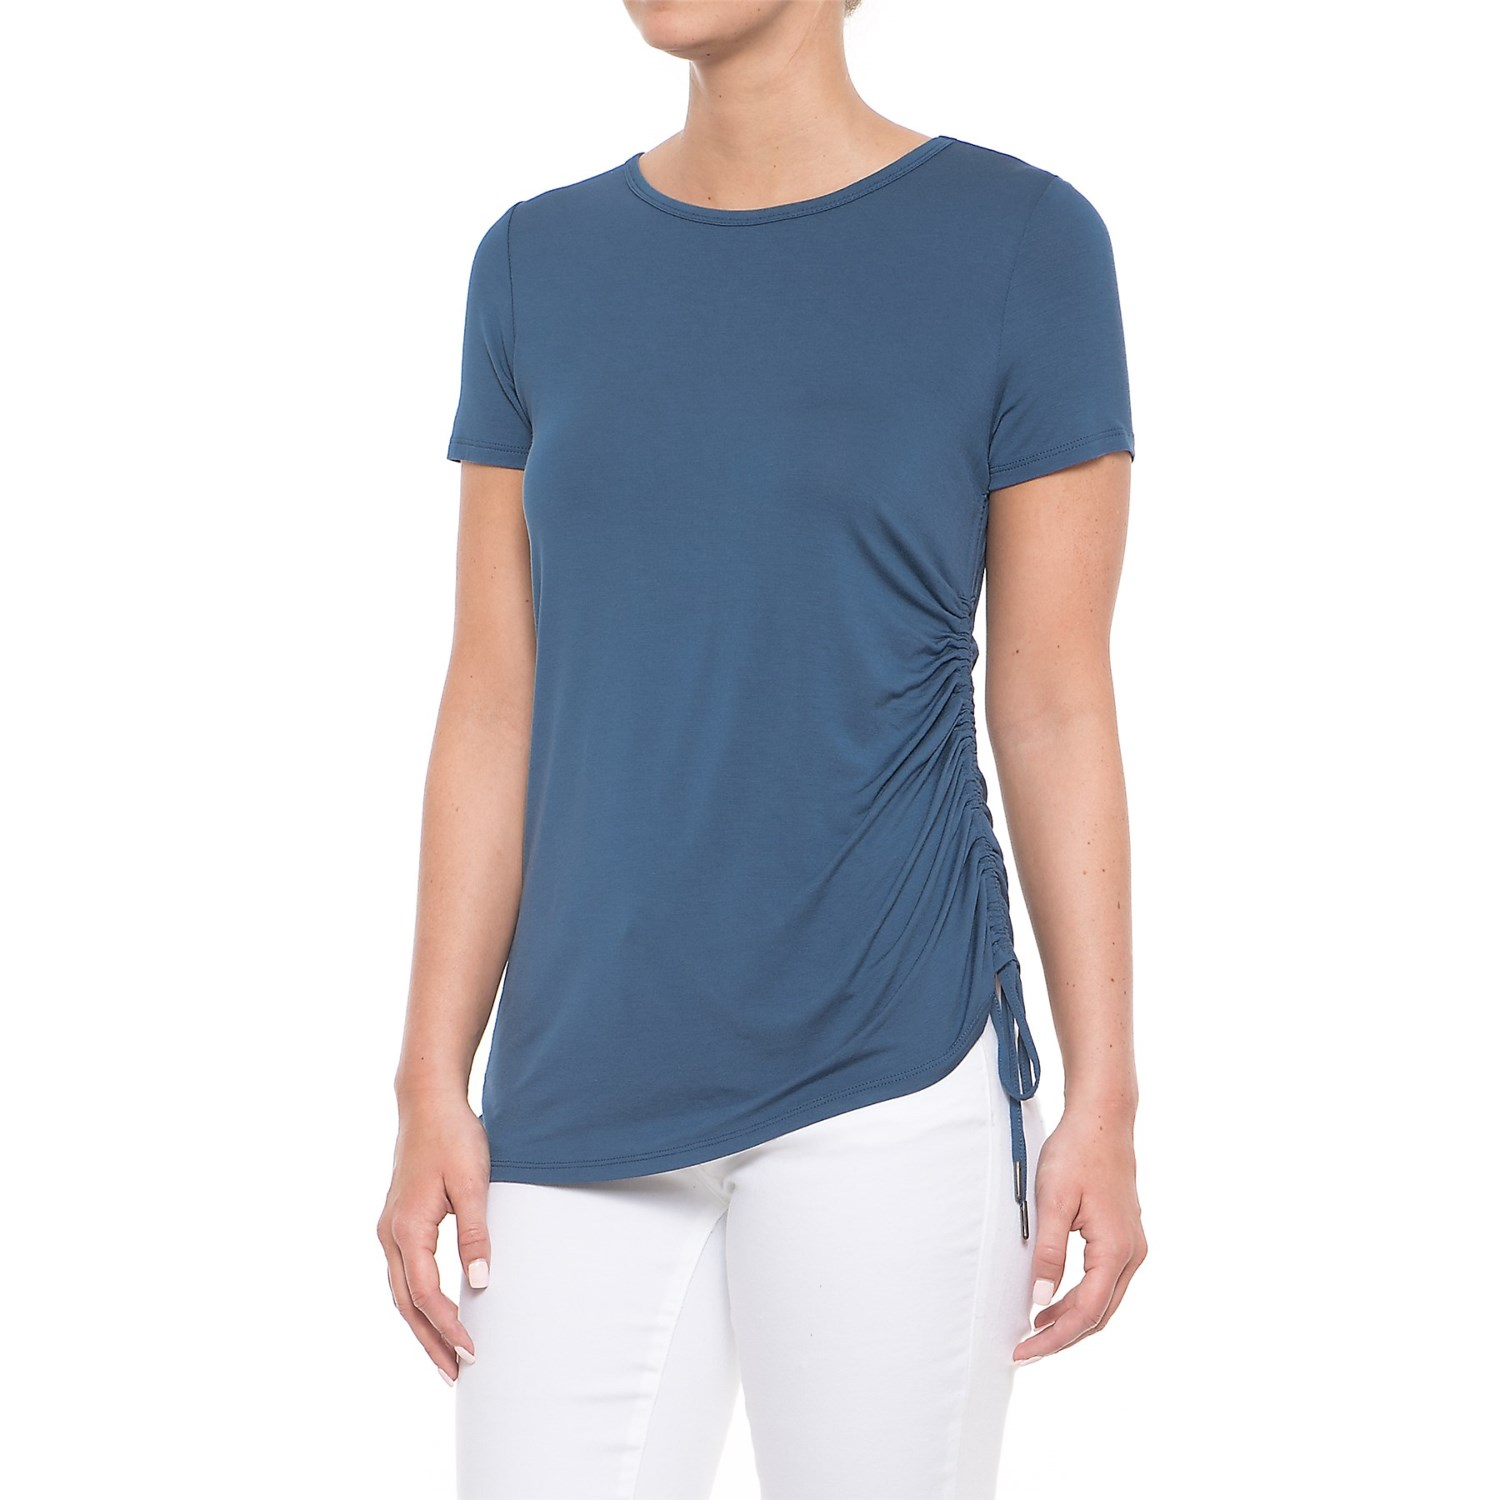 CG Cable & Gauge Side Drawstring Shirt (For Women) - Save 37%